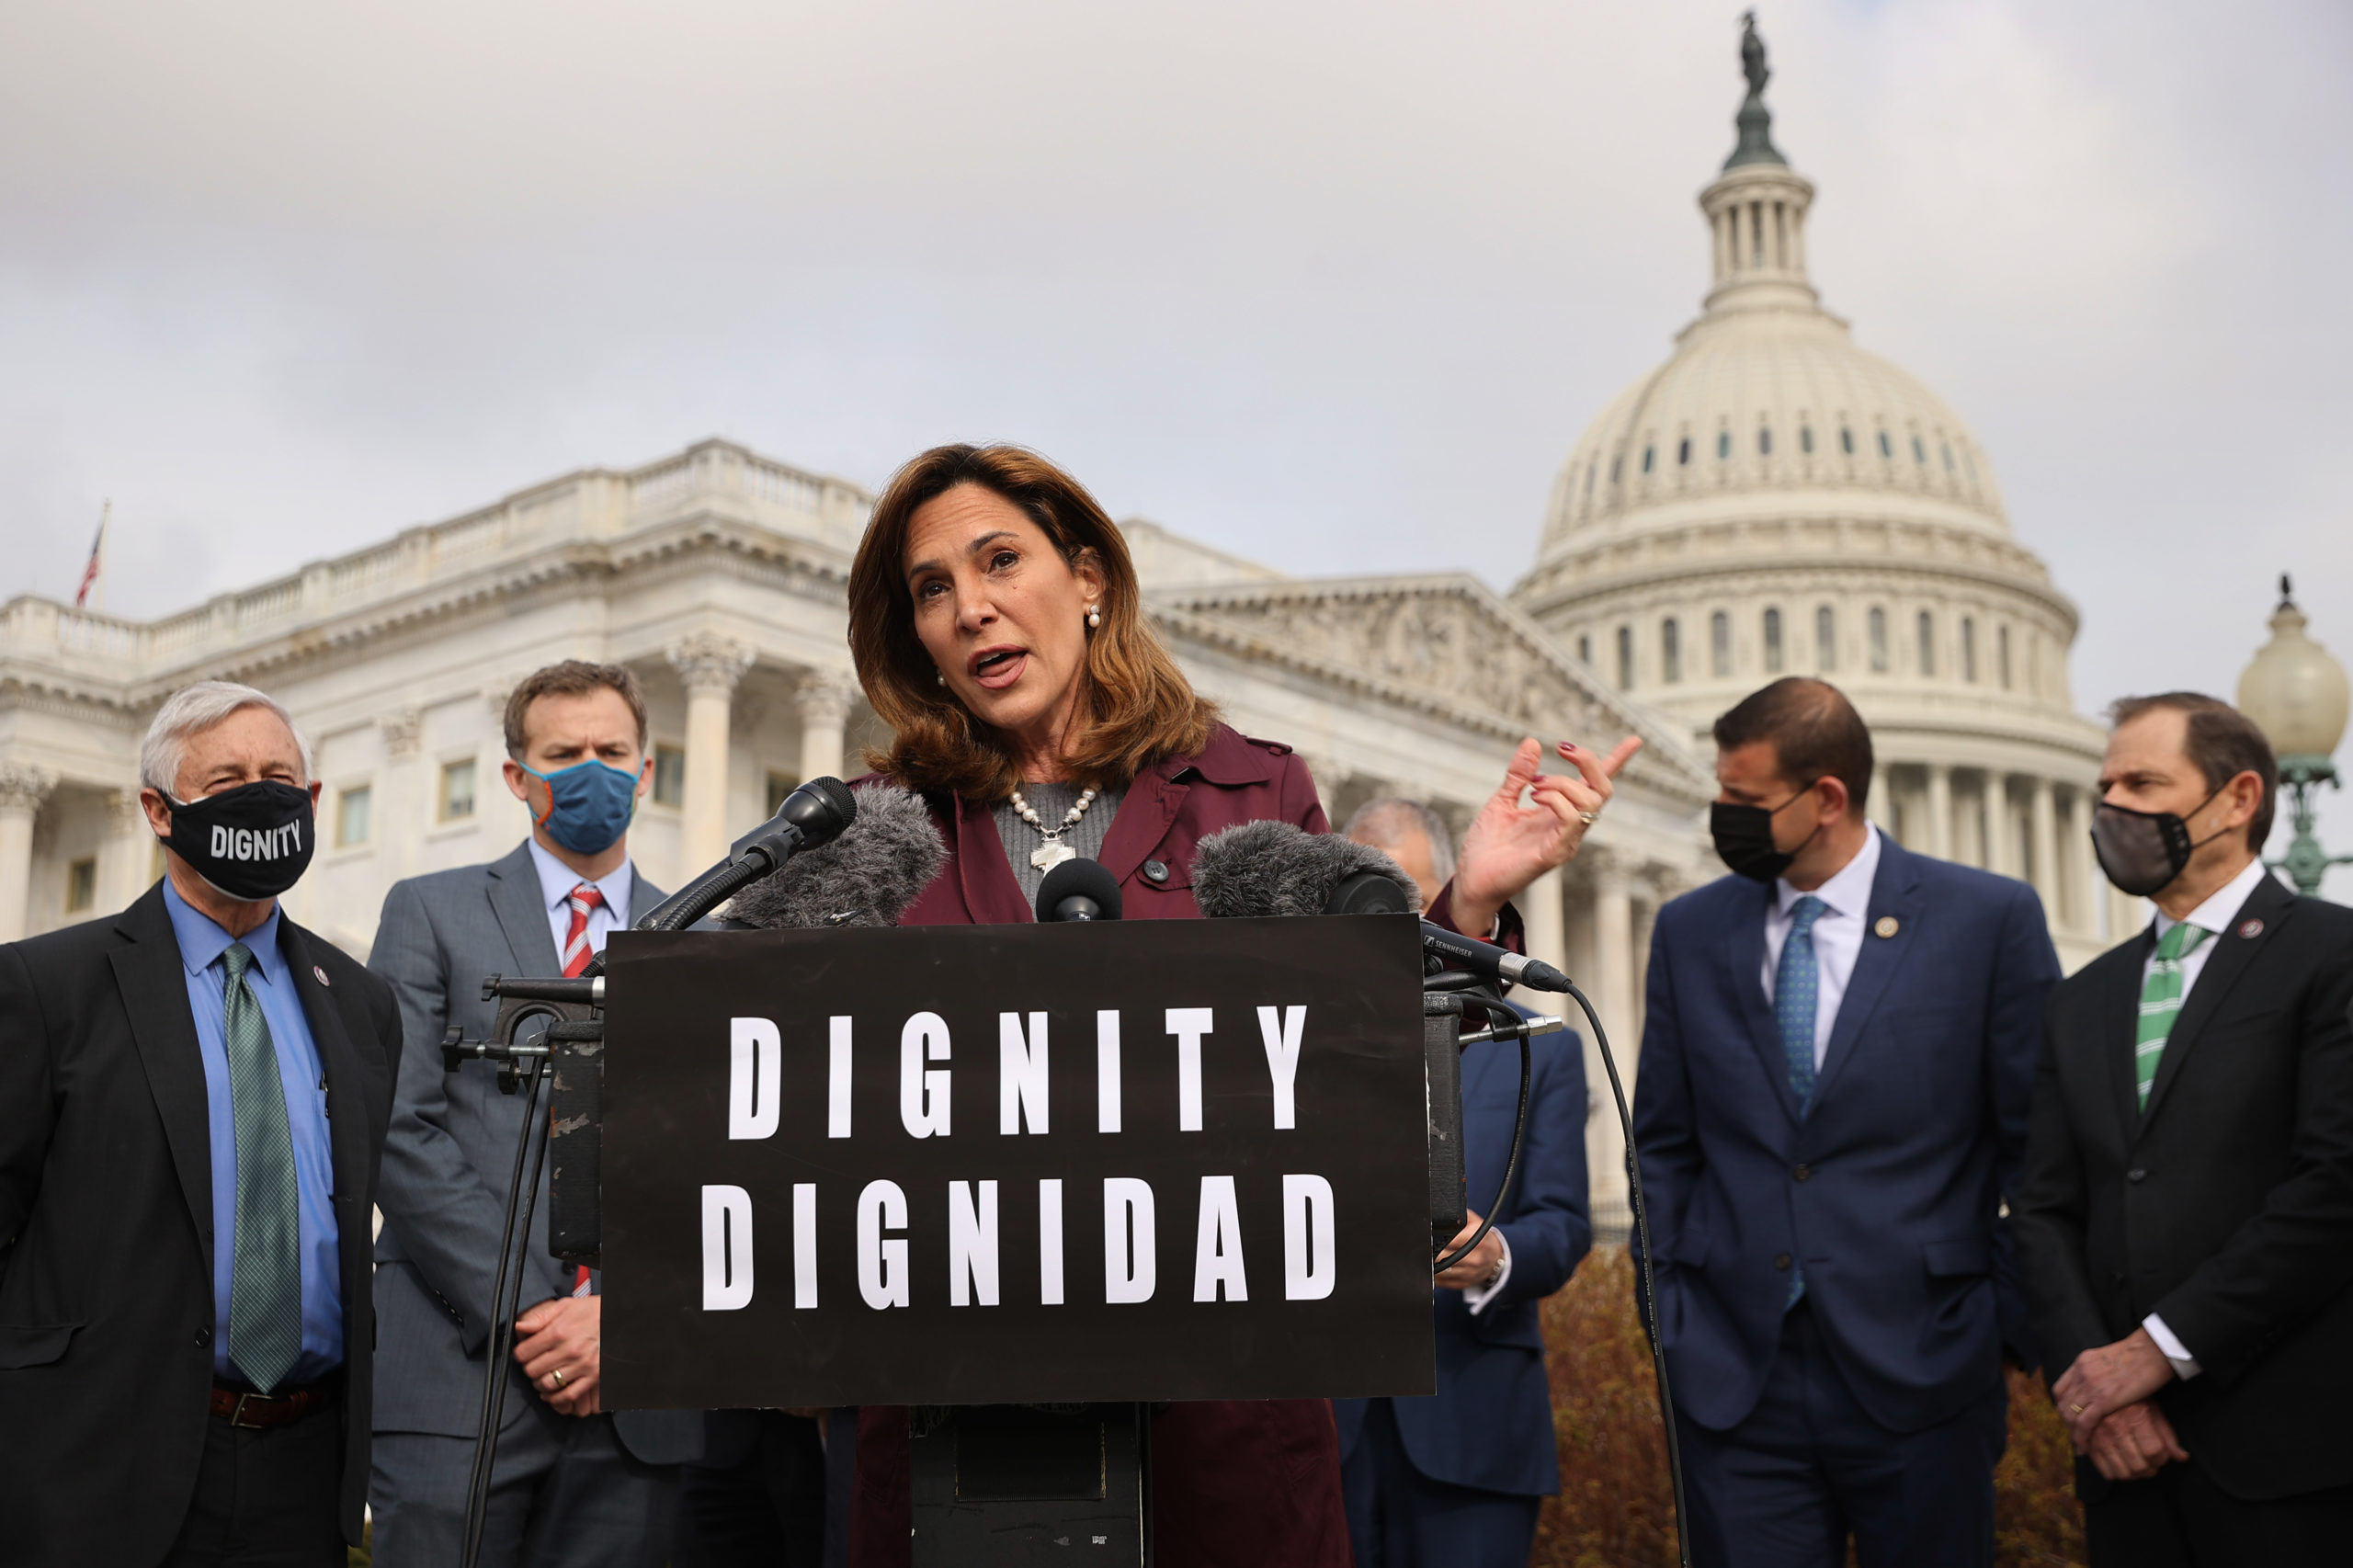 Rep. Maria Elvira Salazar, Republican of Florida, was one of two Hispanic Republicans to flip a House seat in Miami-Dade County in 2020. (Chip Somodevilla/Getty Images)